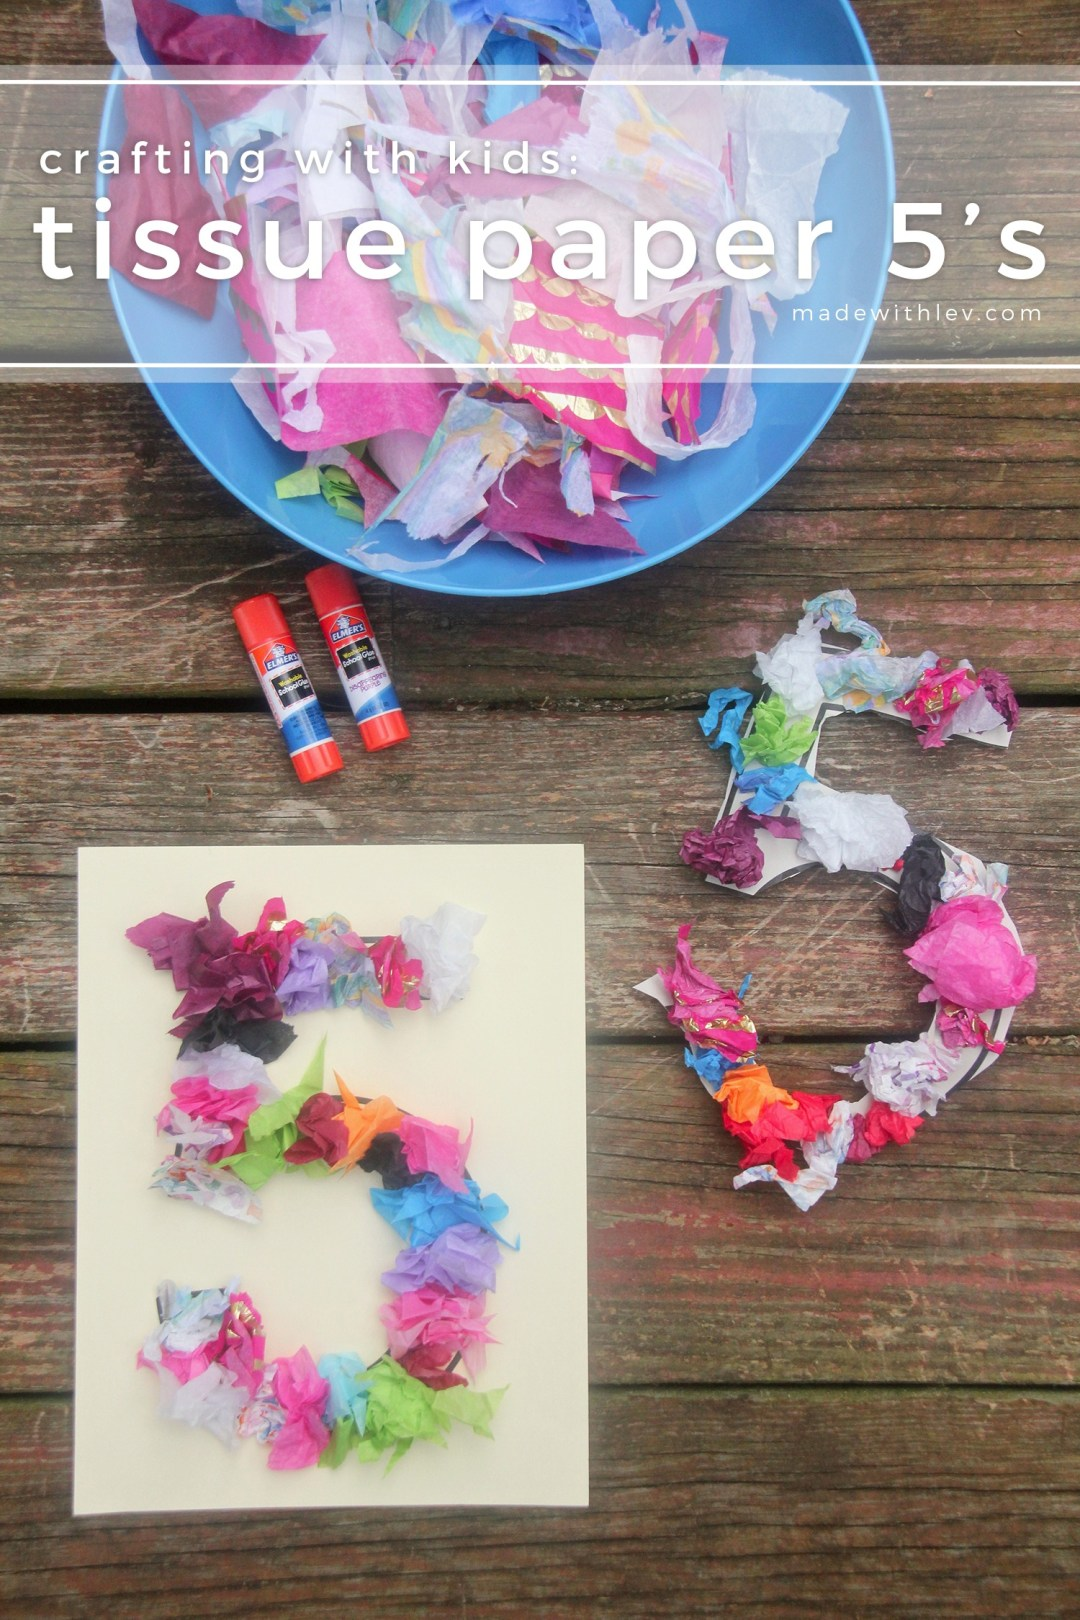 Crafting with Kids: Tissue Paper 5's (or any other number you want). Great way to use up spare tissue paper while practicing dexterity and getting creative. #kidscrafts #cincodemayo #craftproject #craftideas #familycraft #tissuepaper #colorfulcrafts